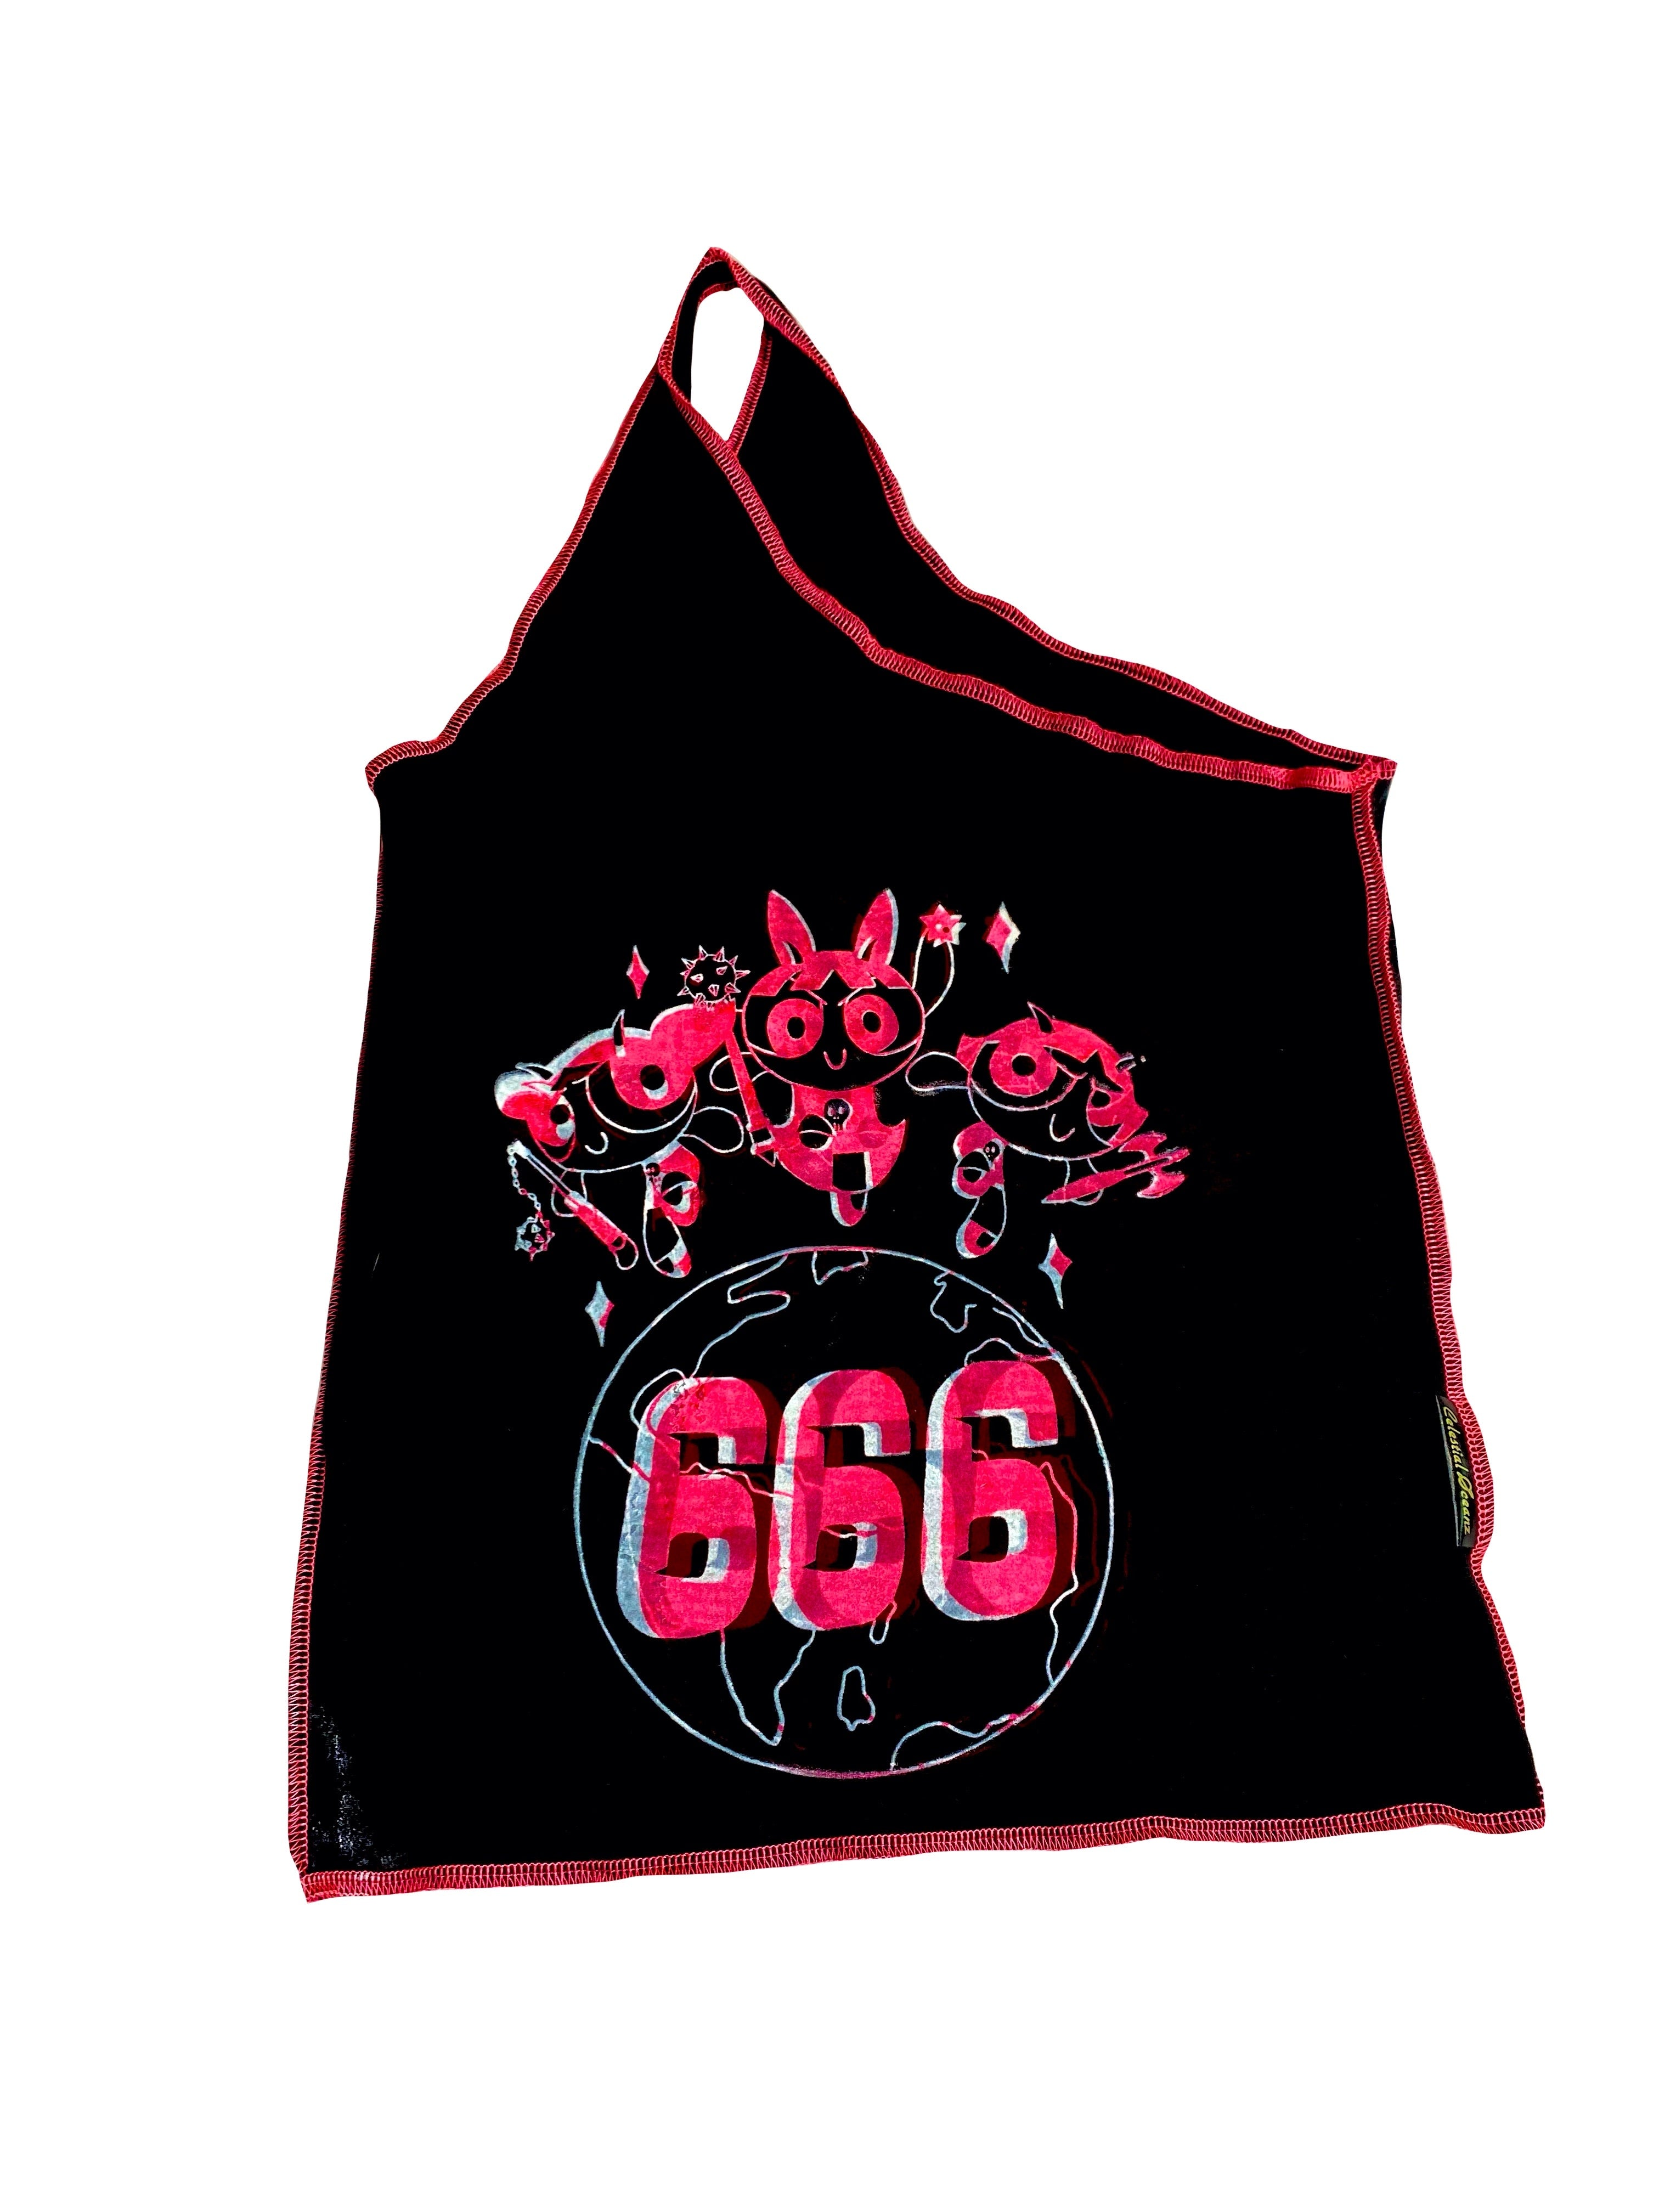 PPG tank top (small)